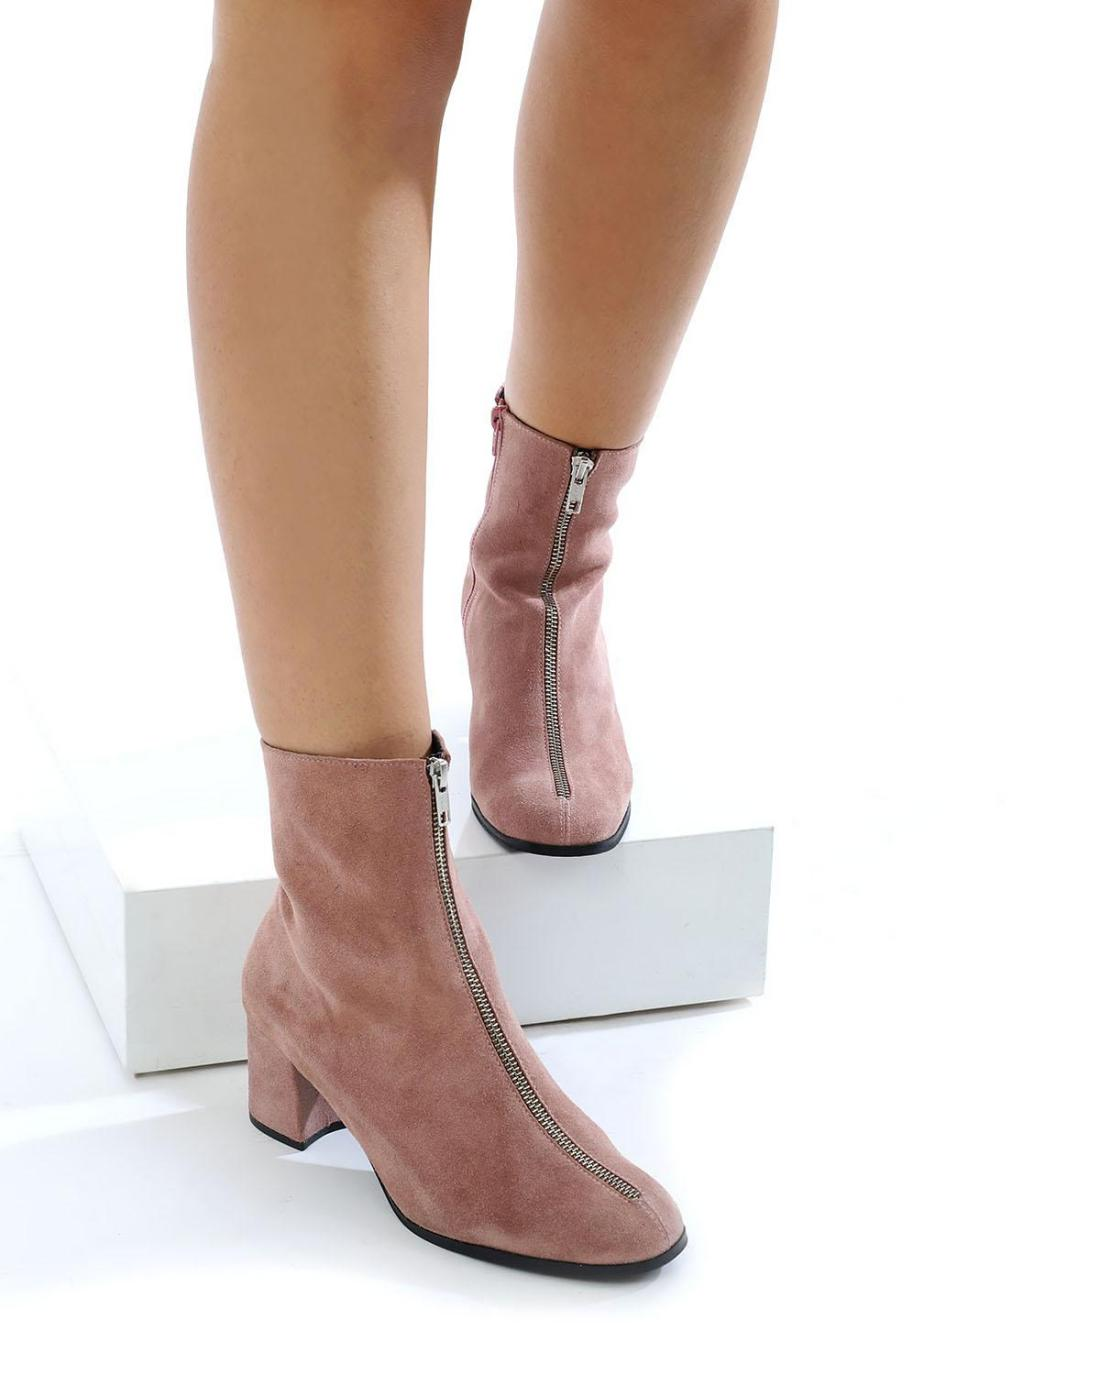 Pink leather ankle boots